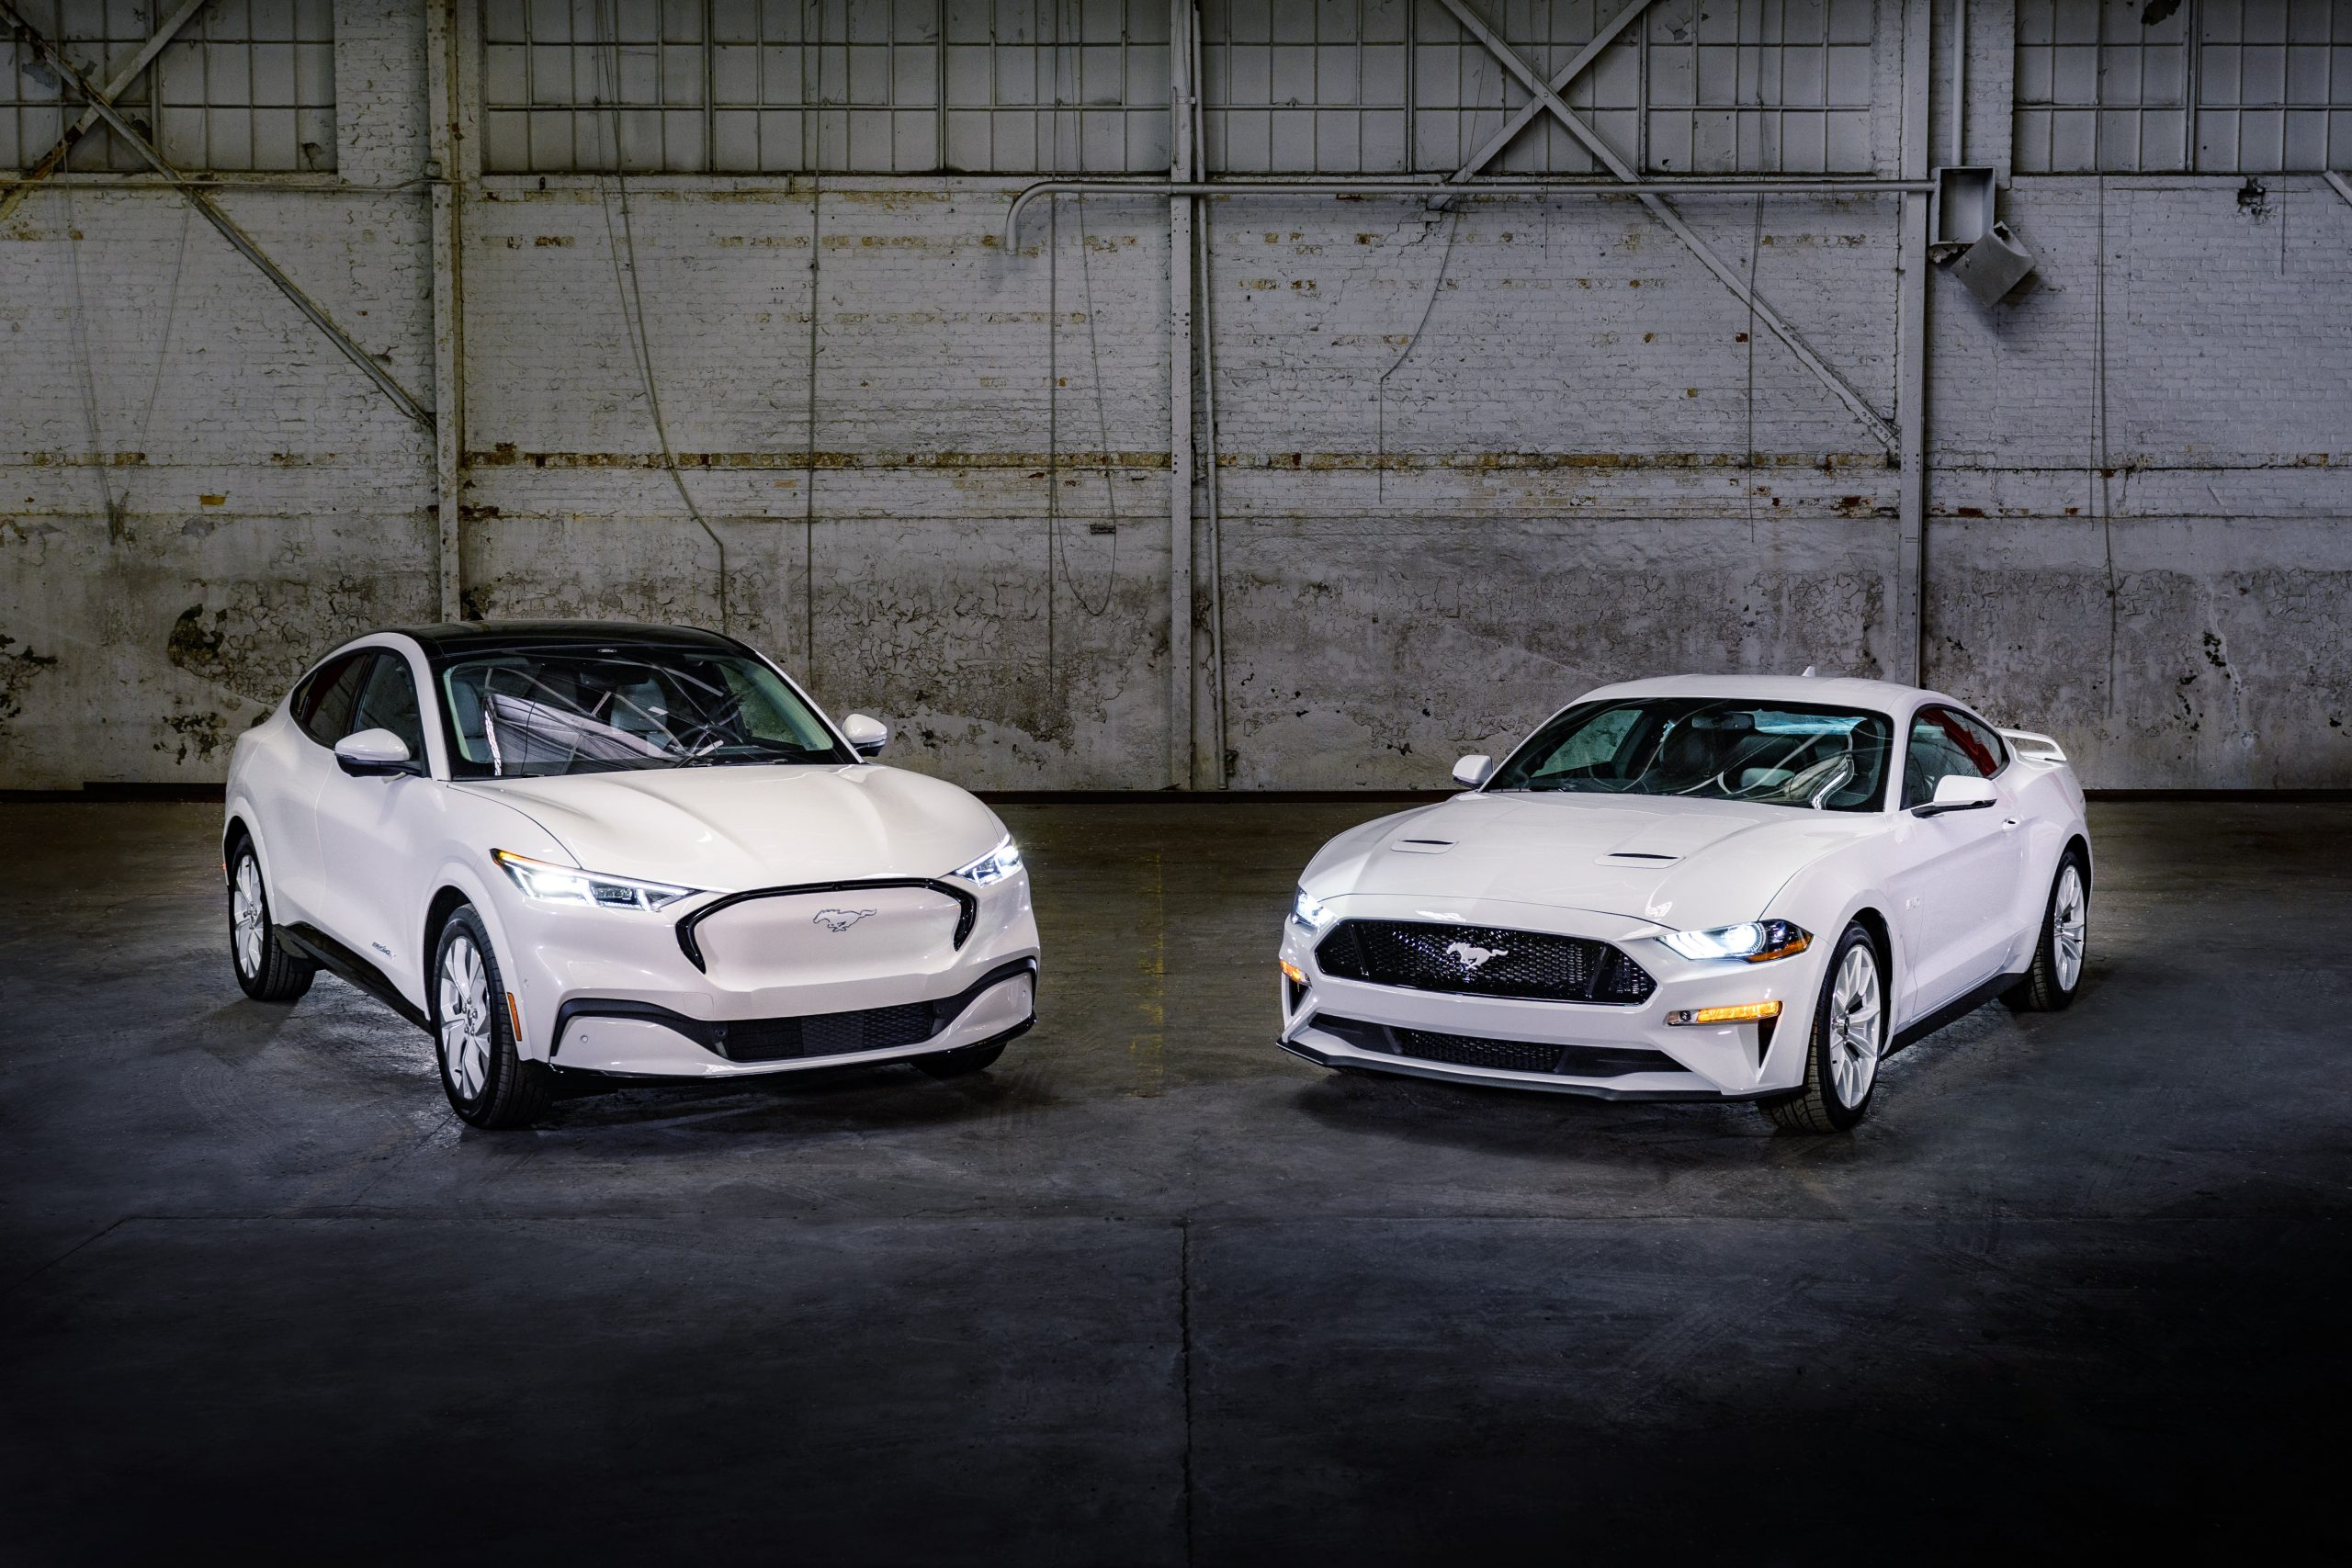 2022 Mustang Mach-E_2022 Mustang Coupe_Ice White Appearance Package_01